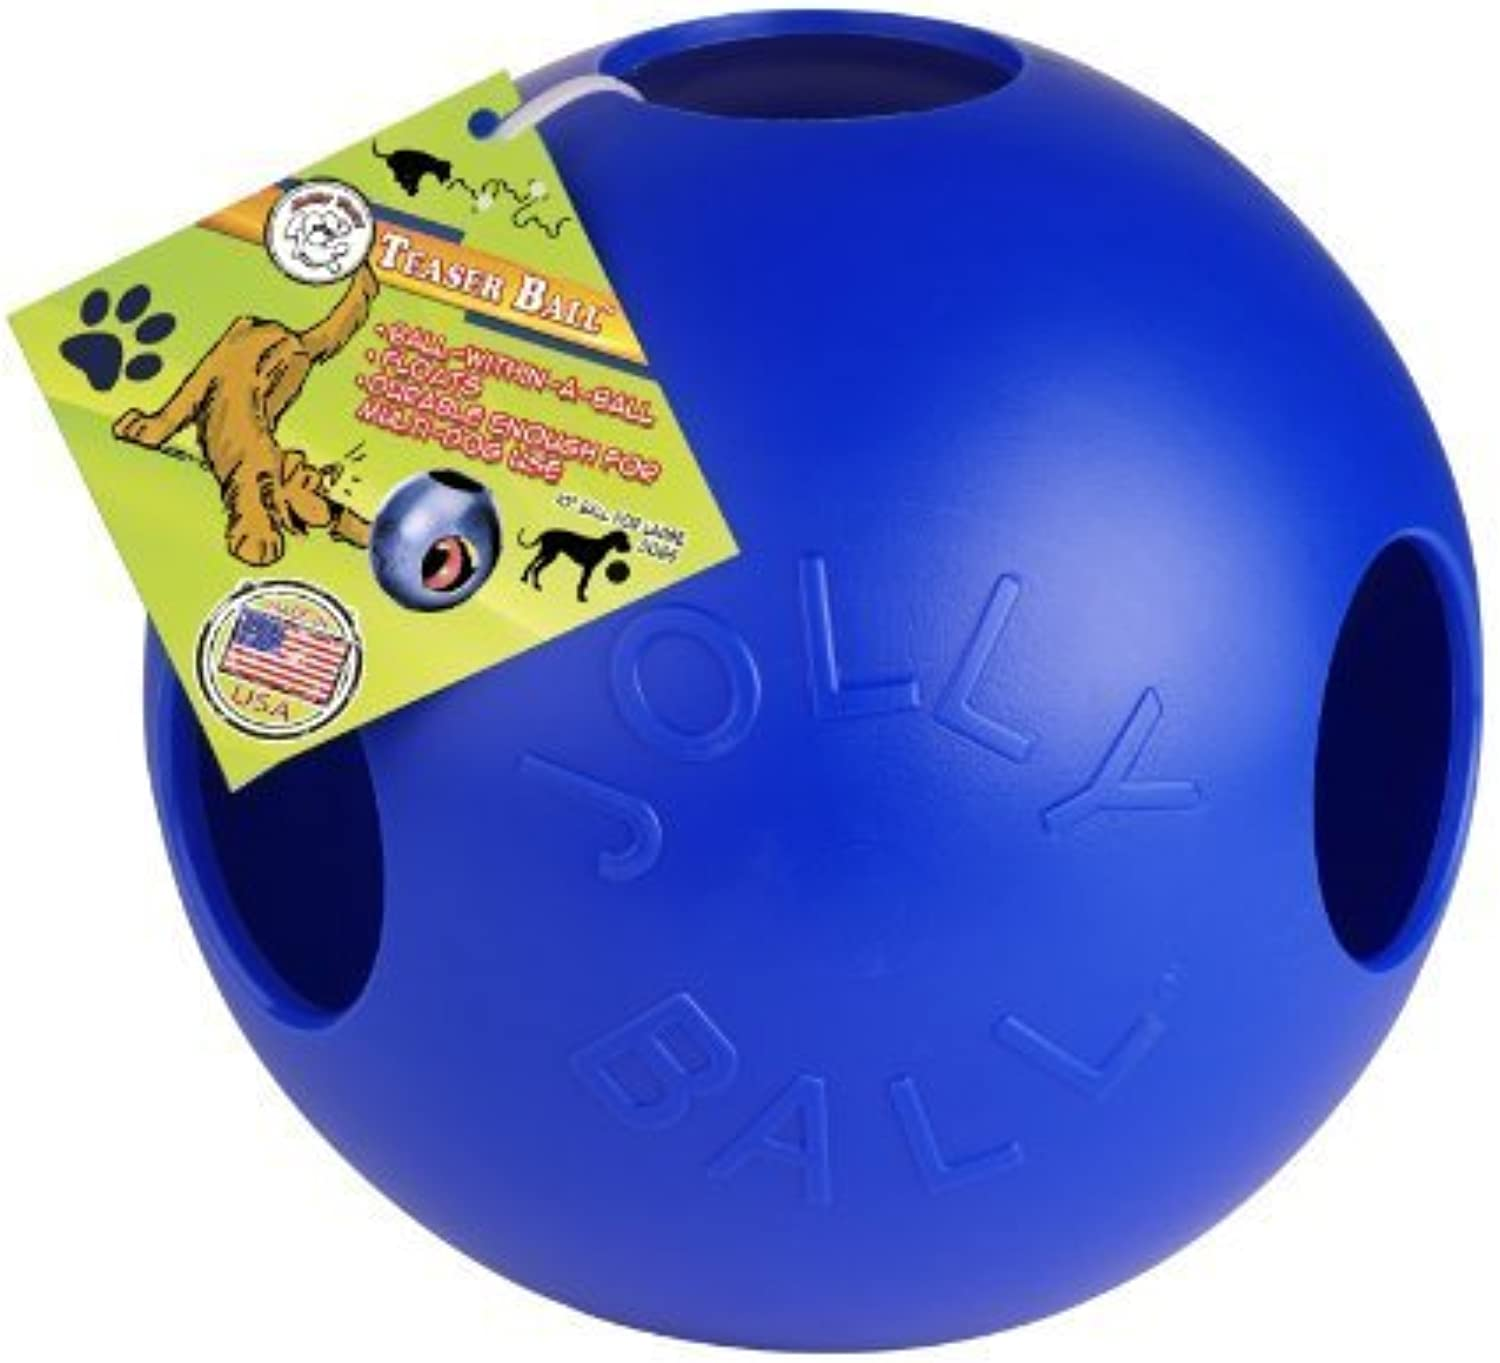 Jolly Pets 10Inch Teaser Jolly Ball bluee by Pet (English Manual)